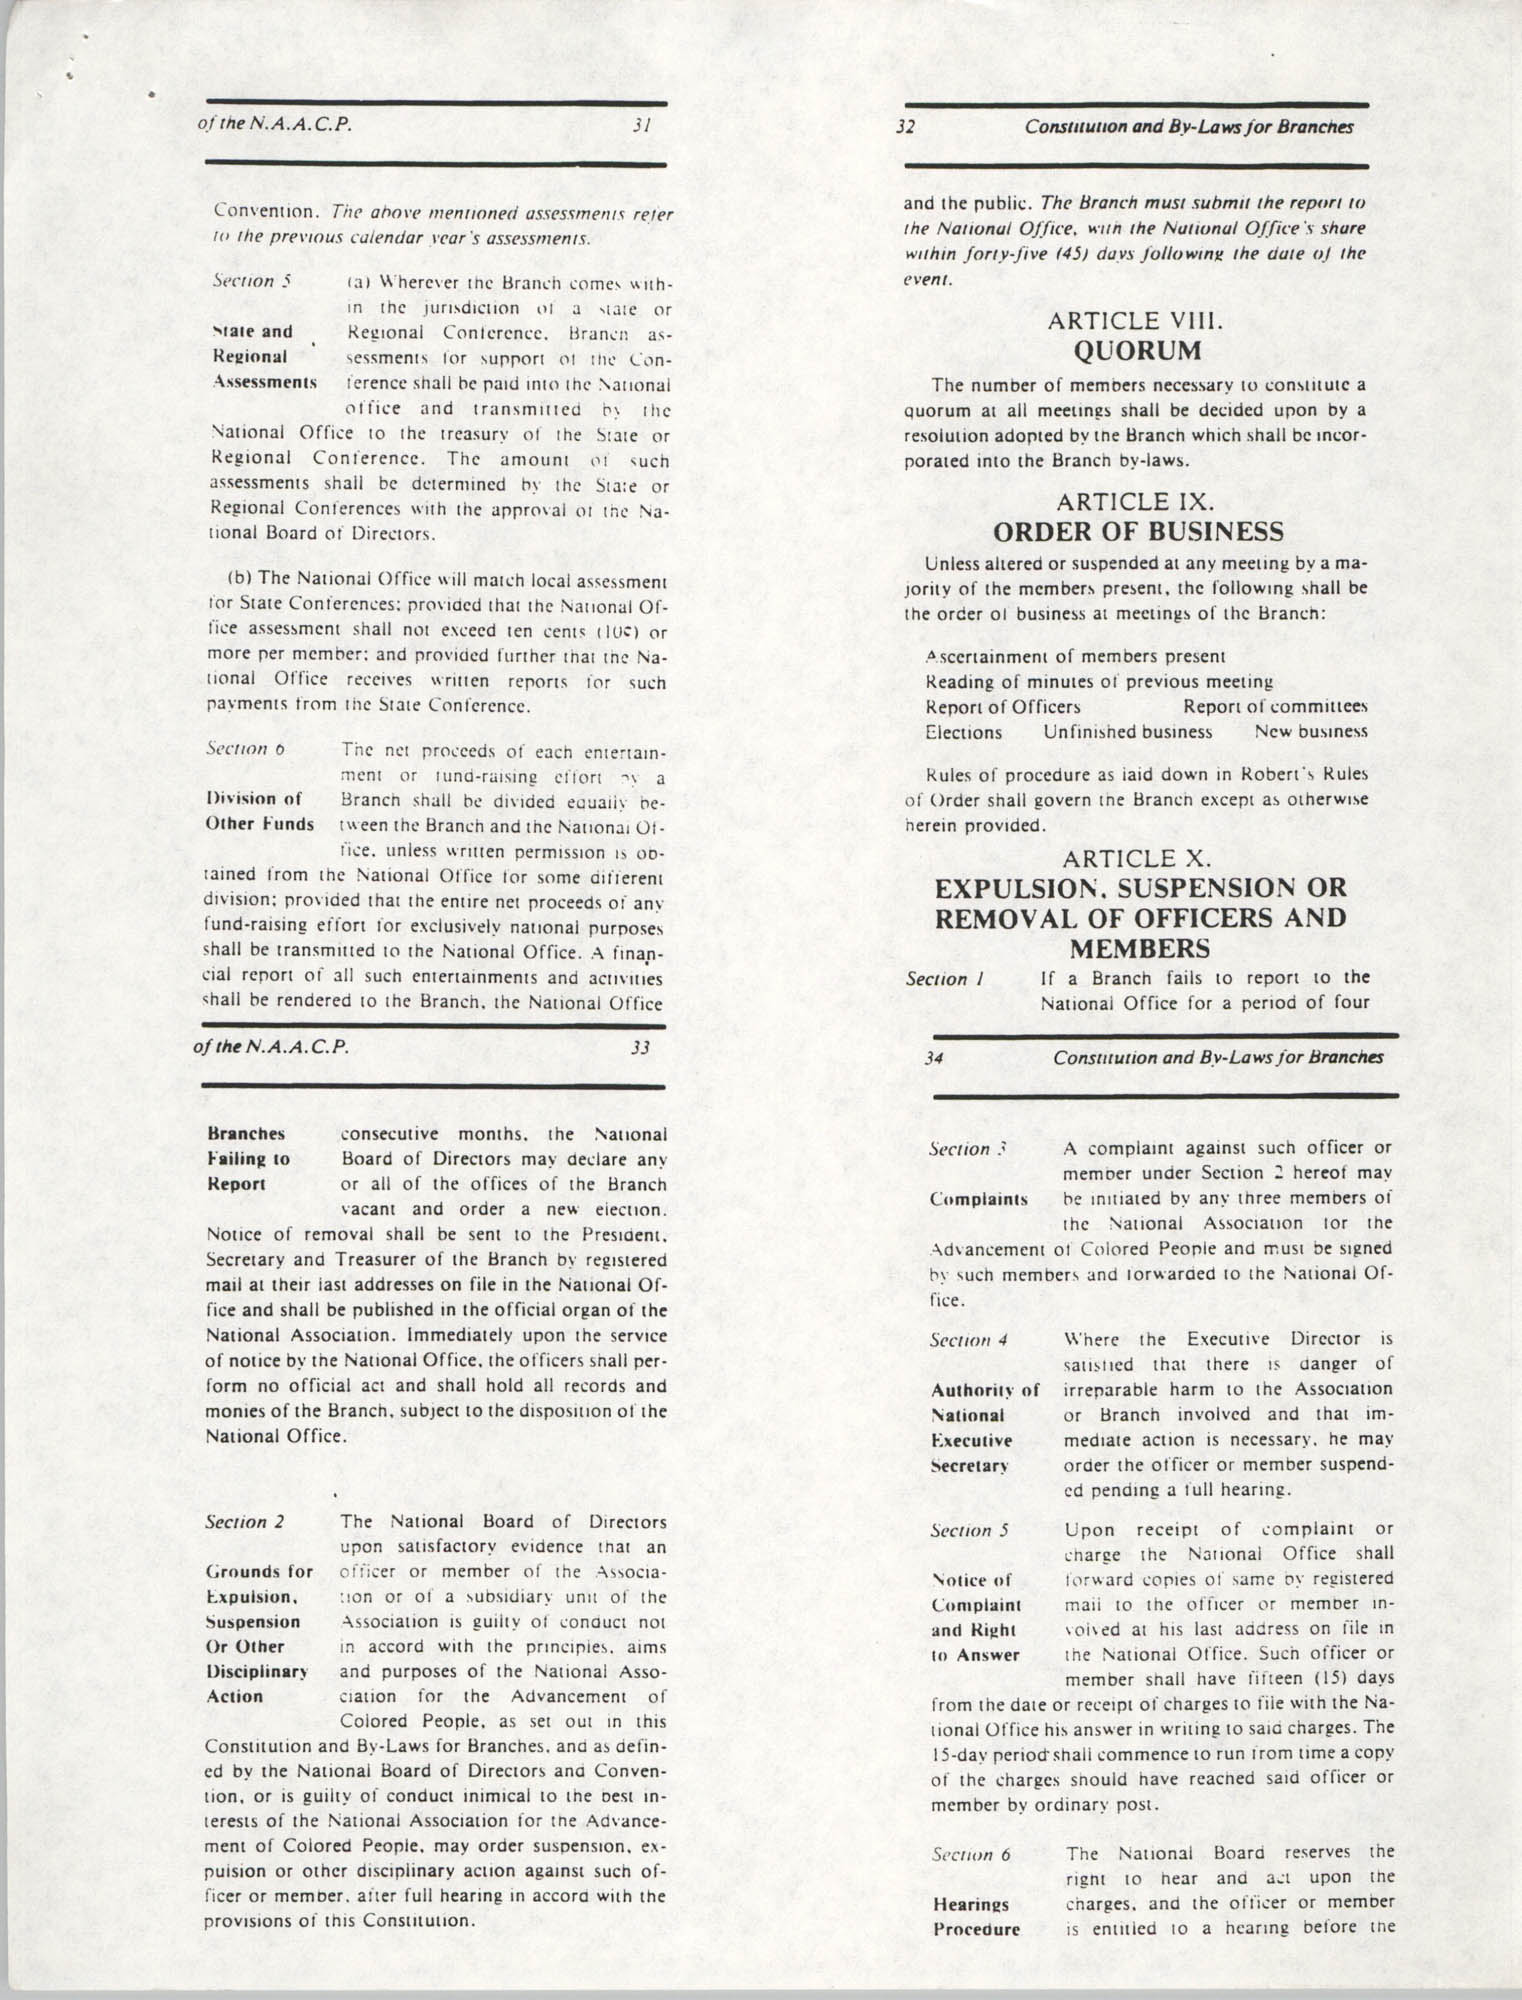 Constitution and By-Laws for Branches of the NAACP, May 1988, Pages 31-34